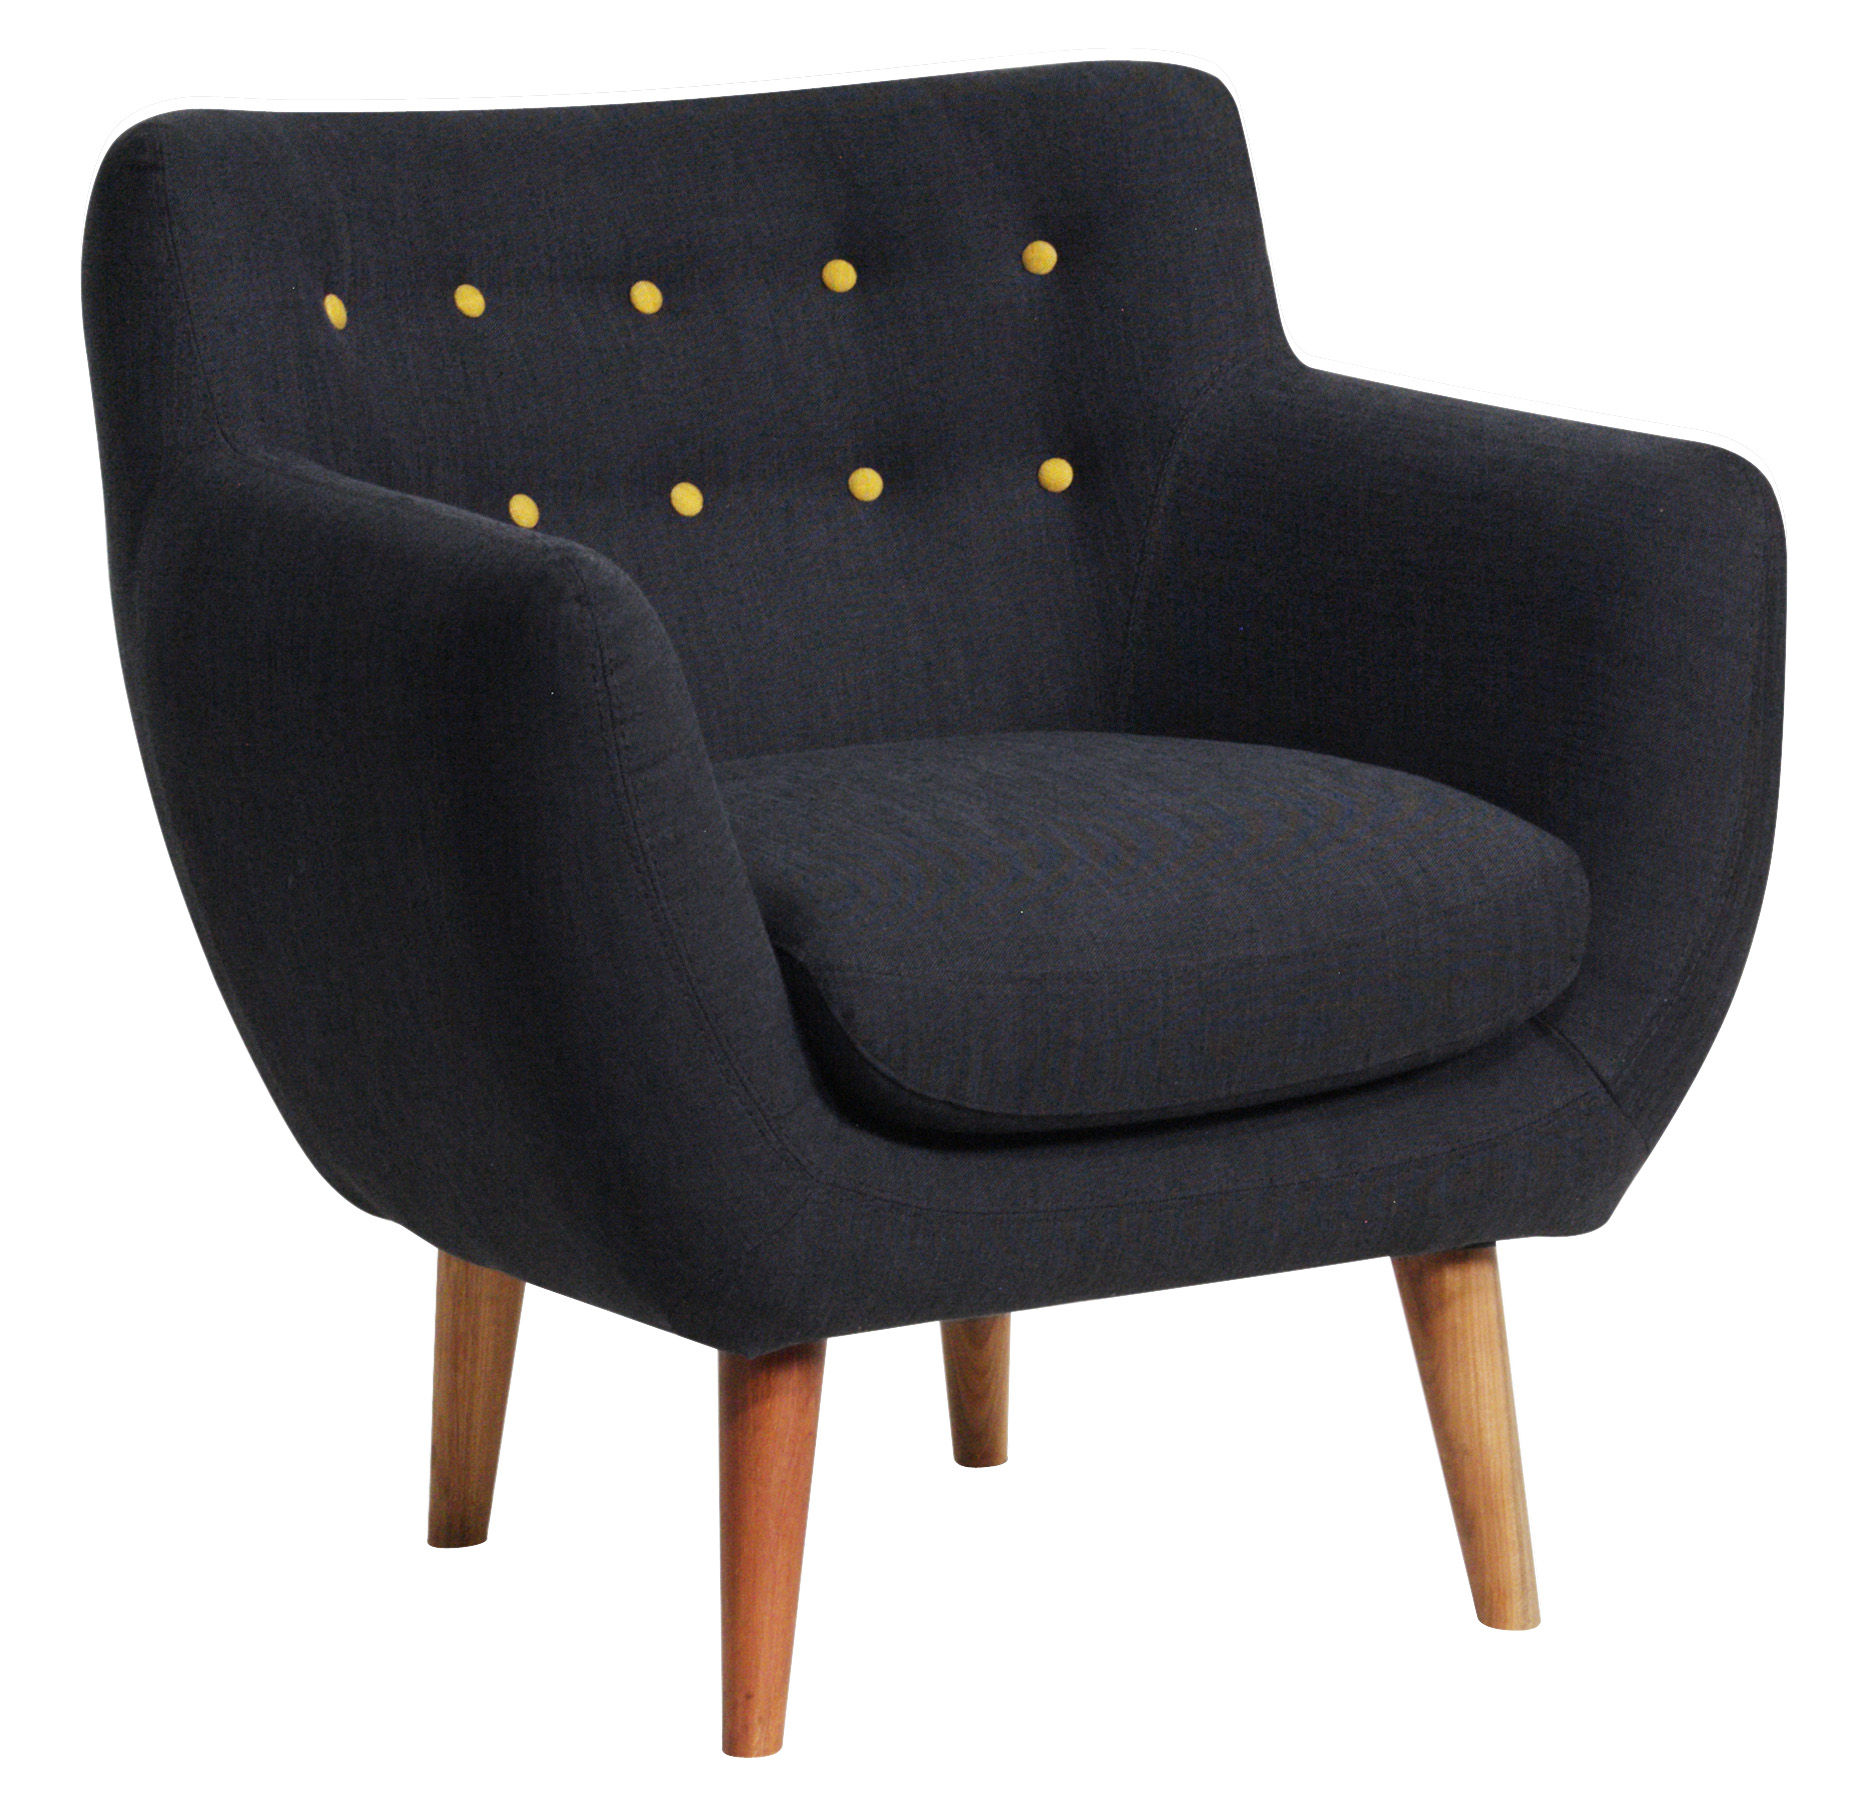 fauteuil rembourr coogee noir de jais boutons jaune citron sentou edition. Black Bedroom Furniture Sets. Home Design Ideas